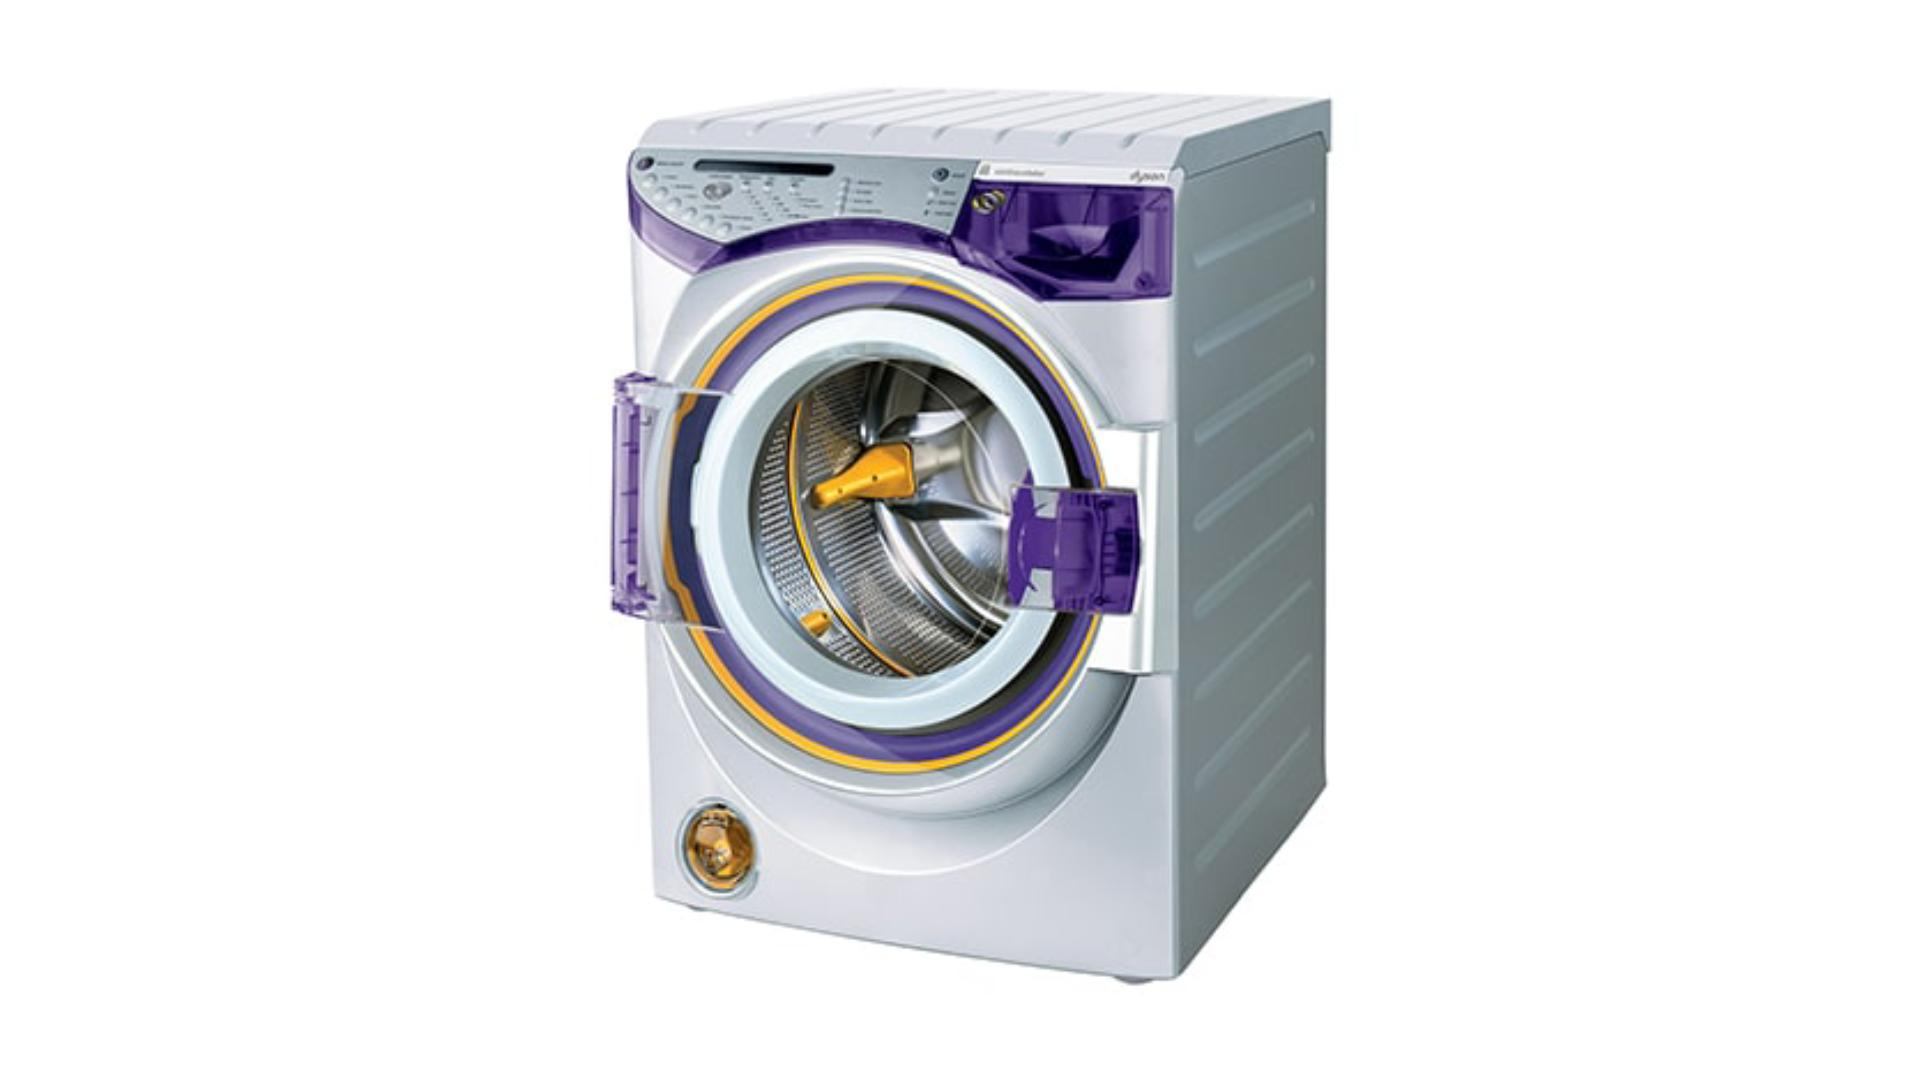 Front view of a Dyson Contratrotator washing machine